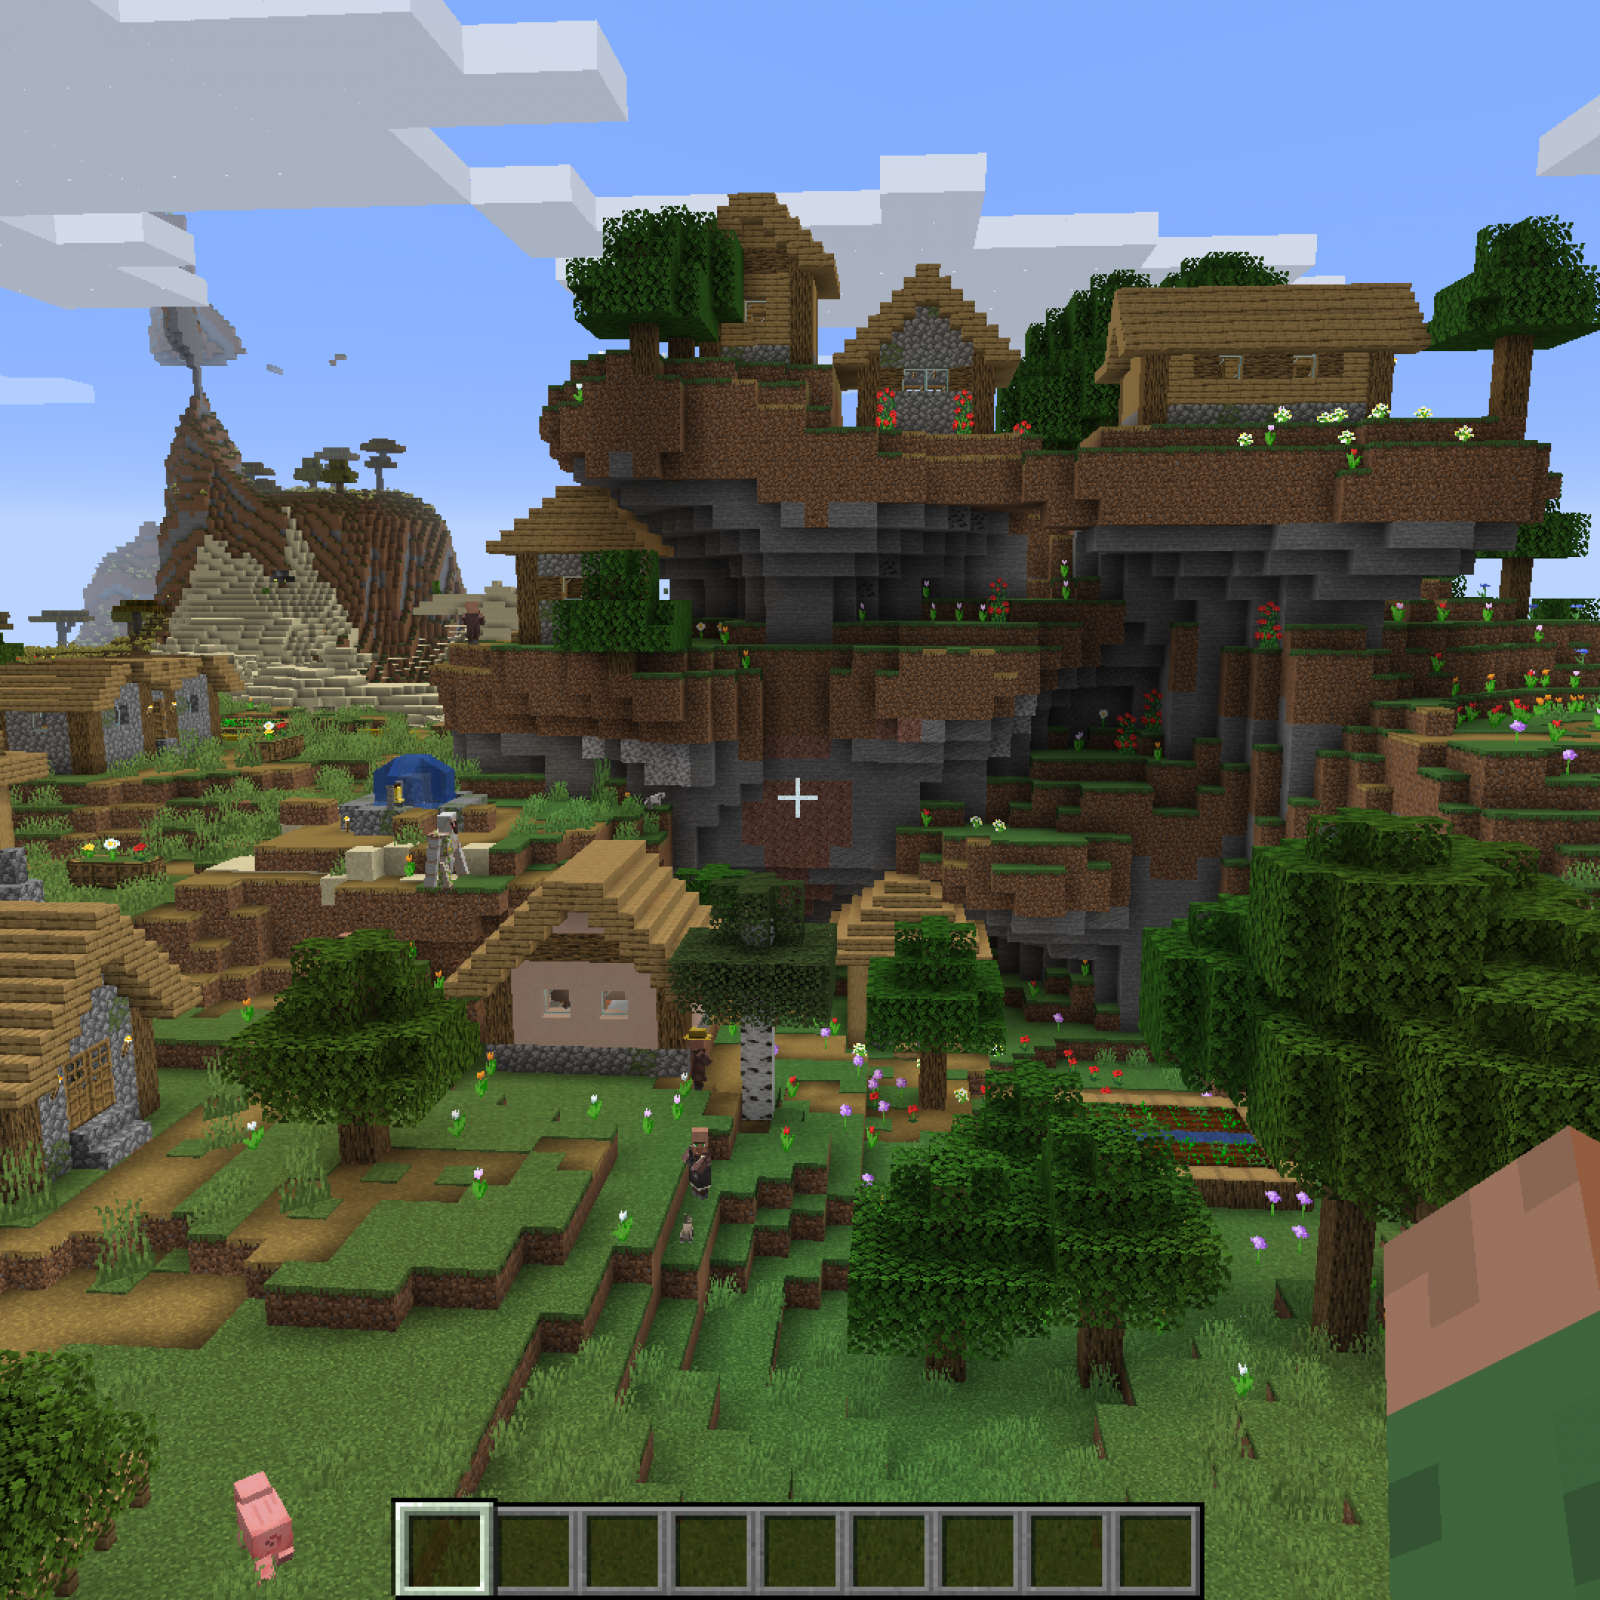 Best 'Minecraft' 1 14 Seeds: 7 New Village and Pillage Seeds